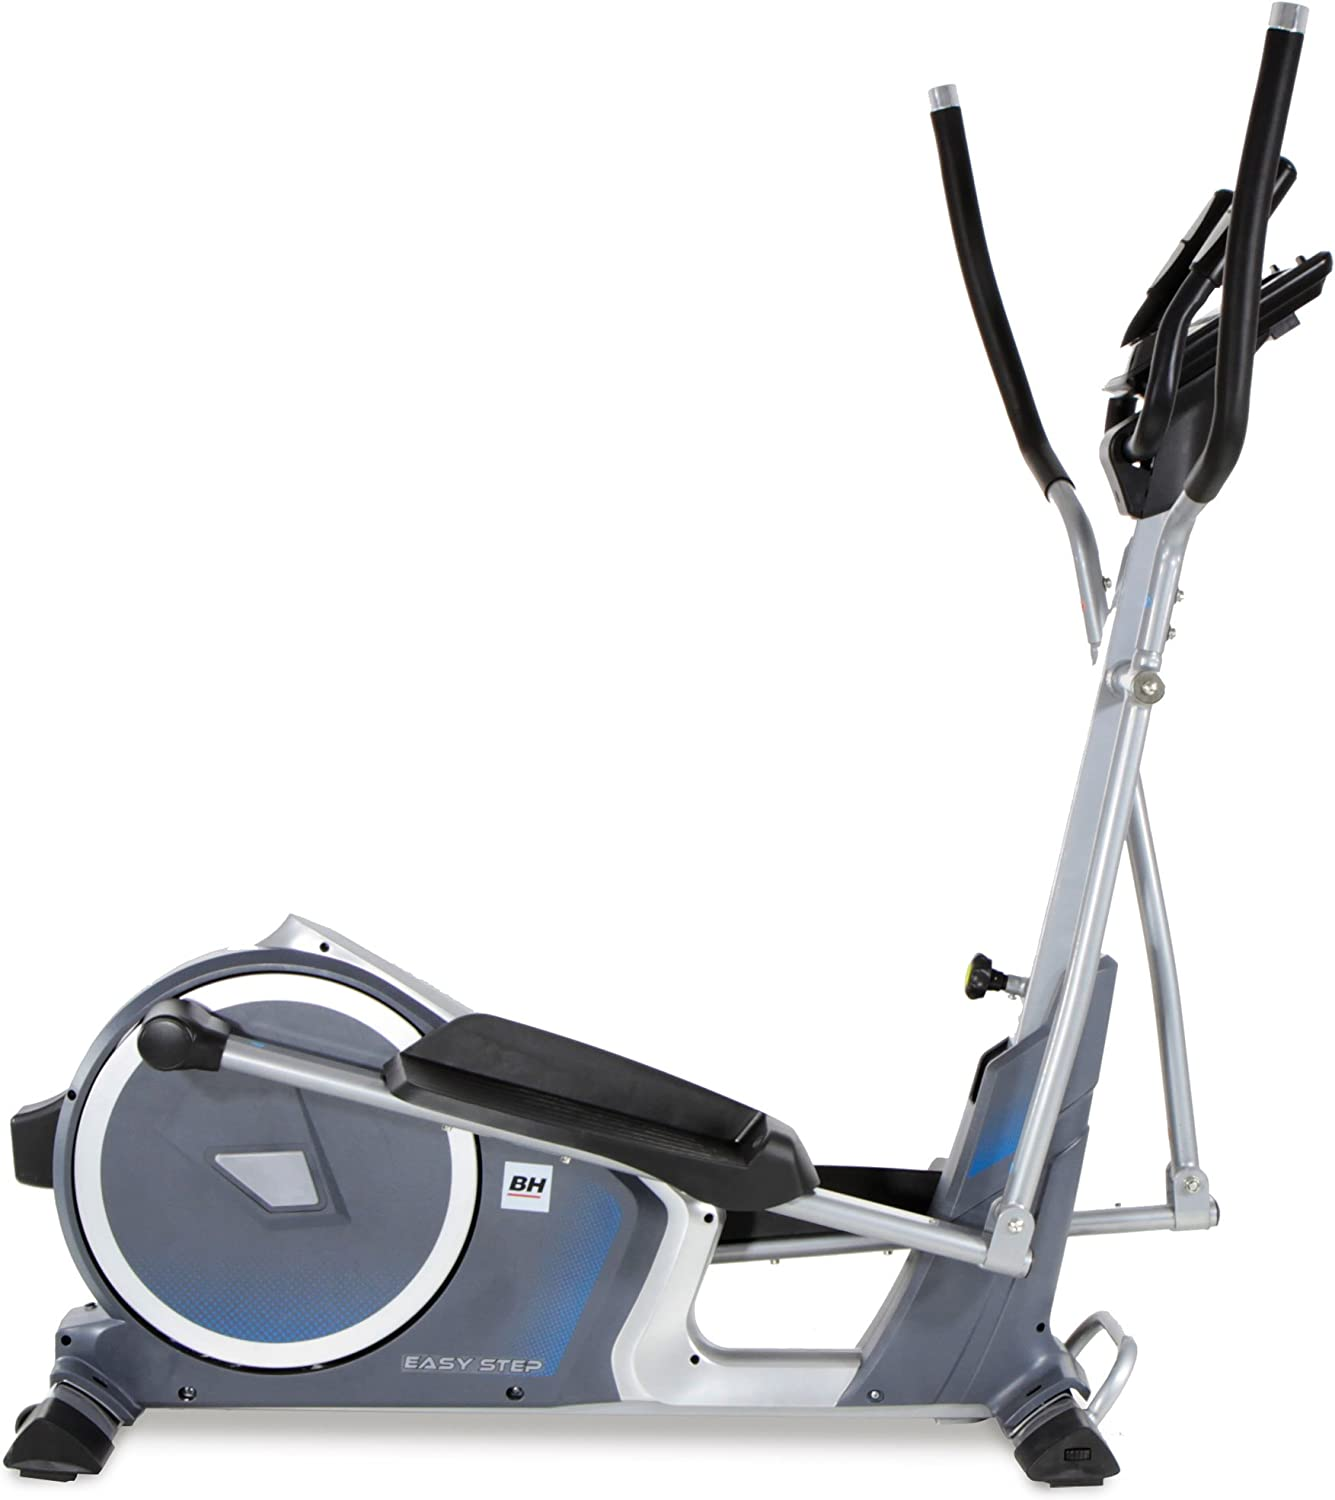 BH Fitness - Bicicleta elíptica i.easystep Dual + Dual Kit be ...